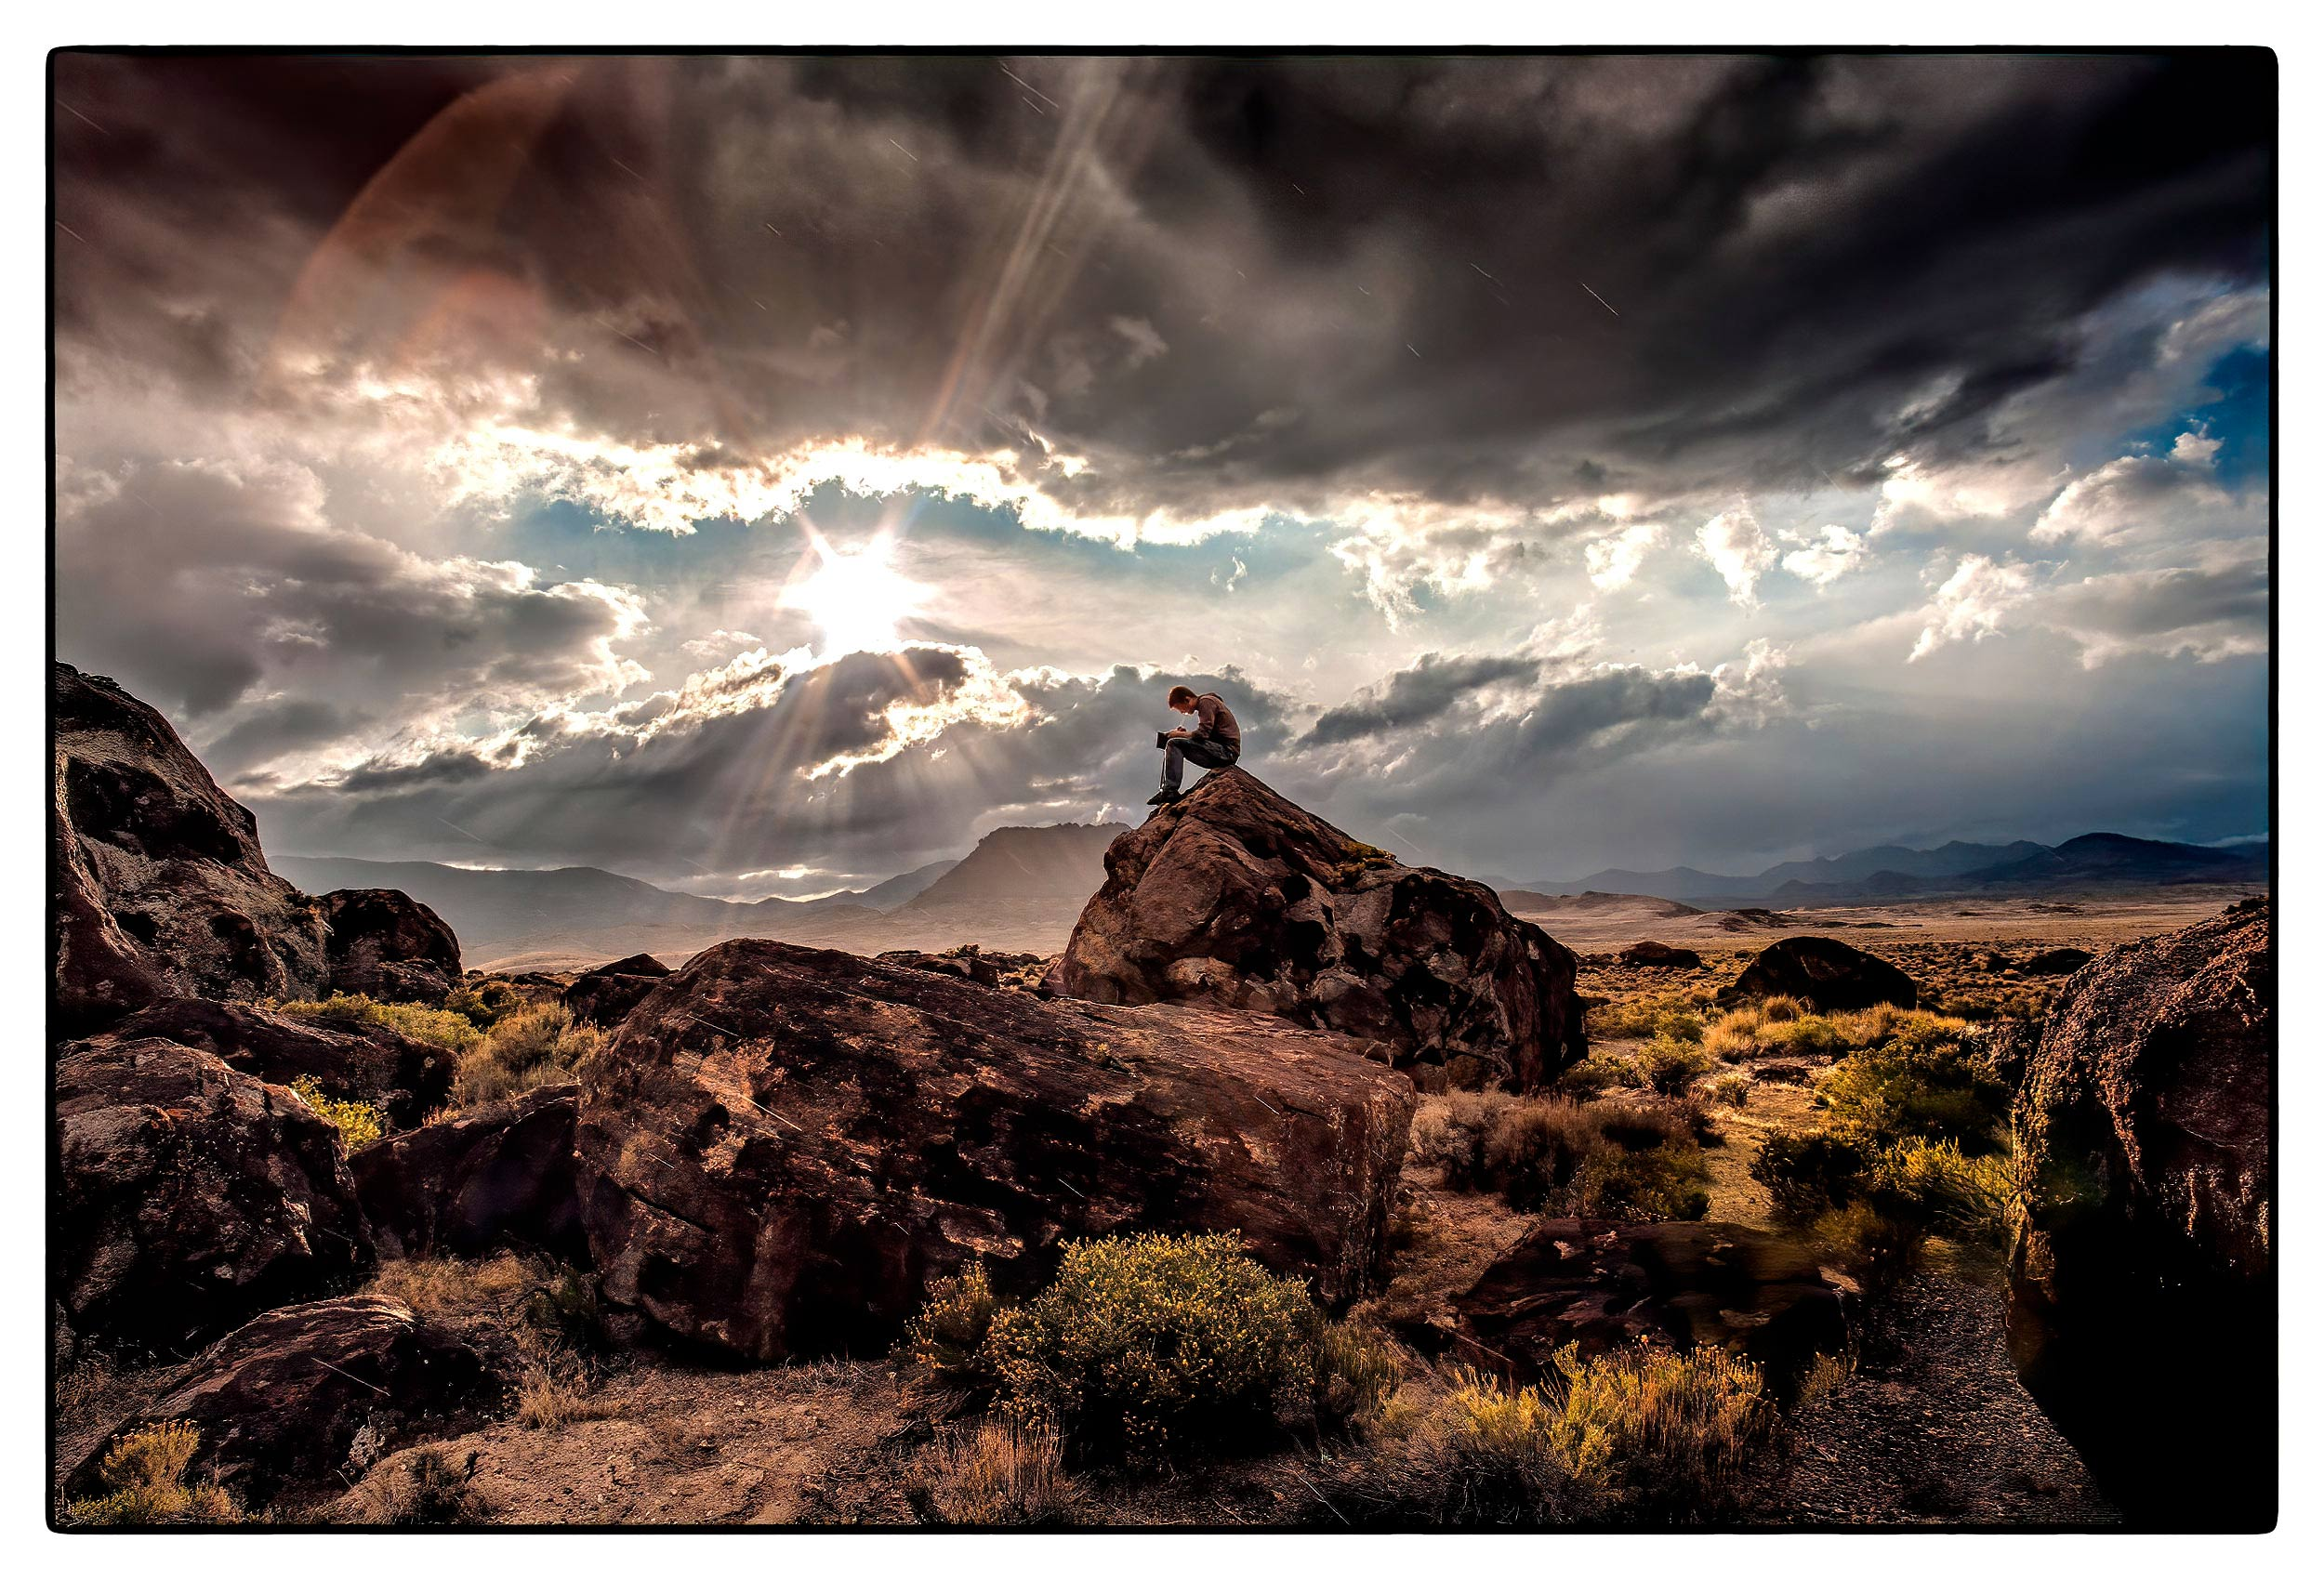 a-man-writes-in-his-journal-as-he-sits-on-a-rock-at-a-rest-stop-in-the-nevada-desert